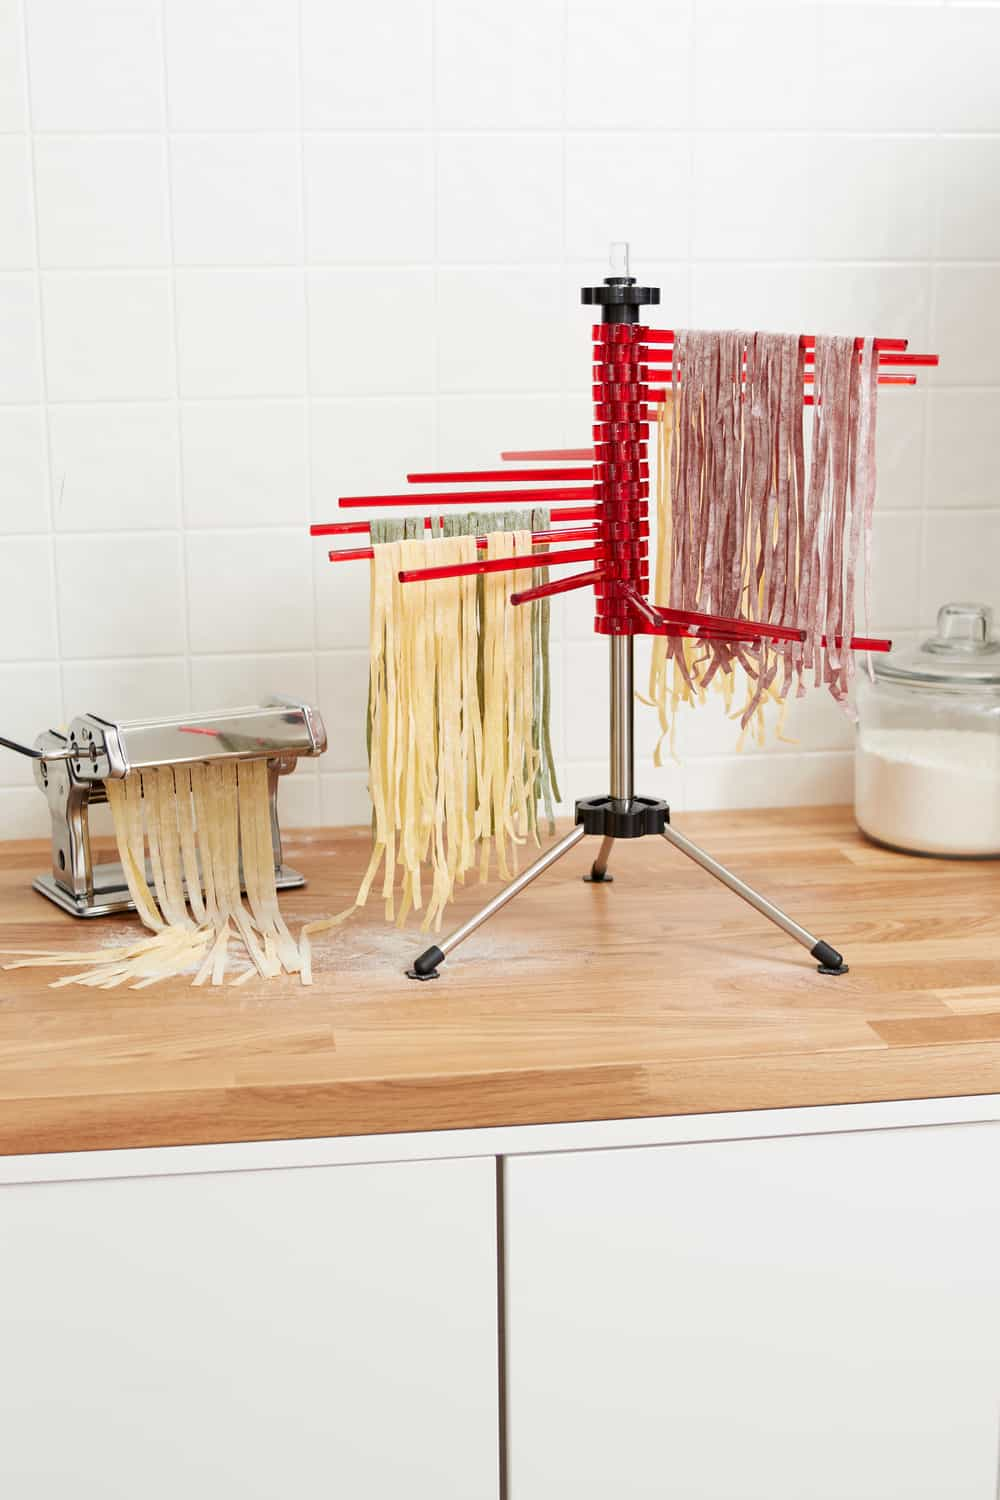 18 Homemade Pasta Drying Rack Plans You Can DIY Easily